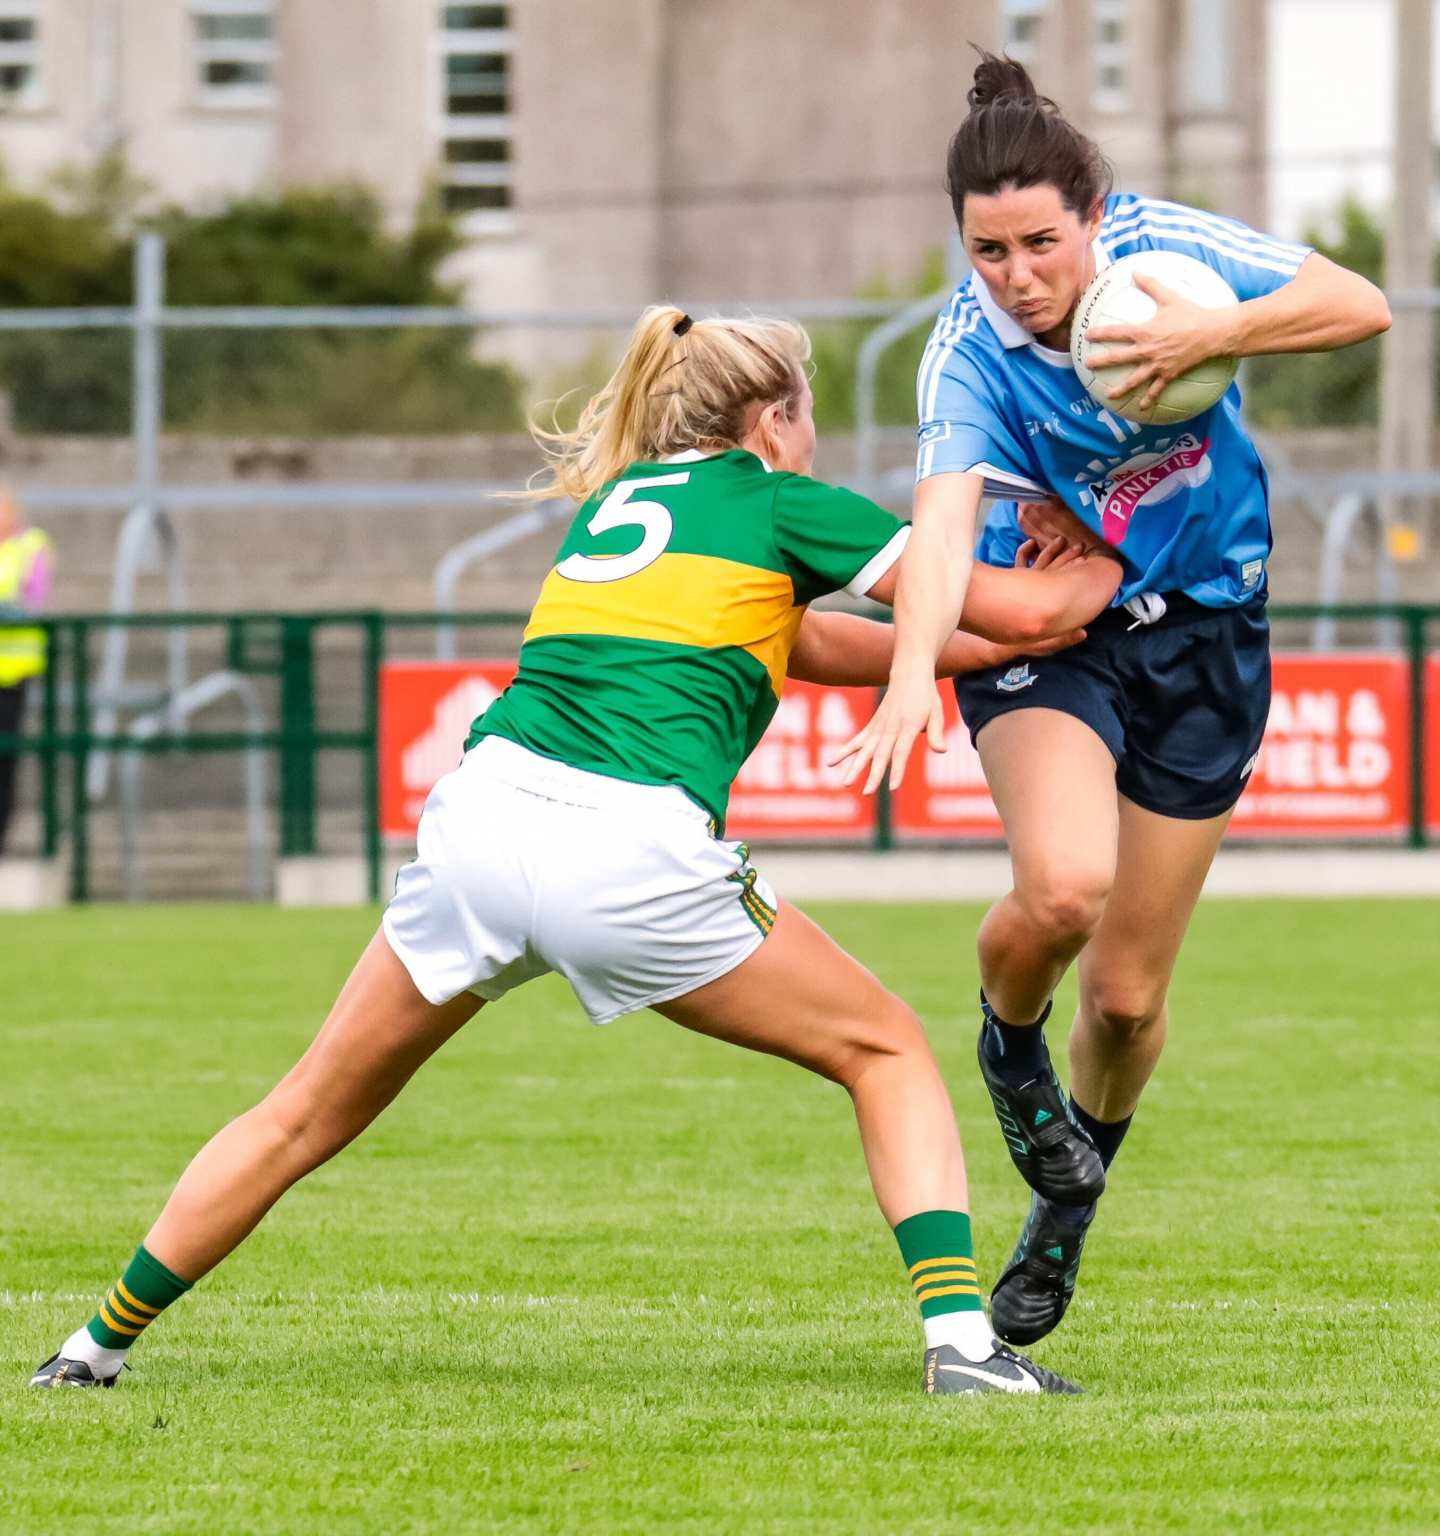 A Dublin and Kerry Ladies footballer in action last year both sides meet again in the 2019 TG4 All Ireland Senior championship quarter finals.